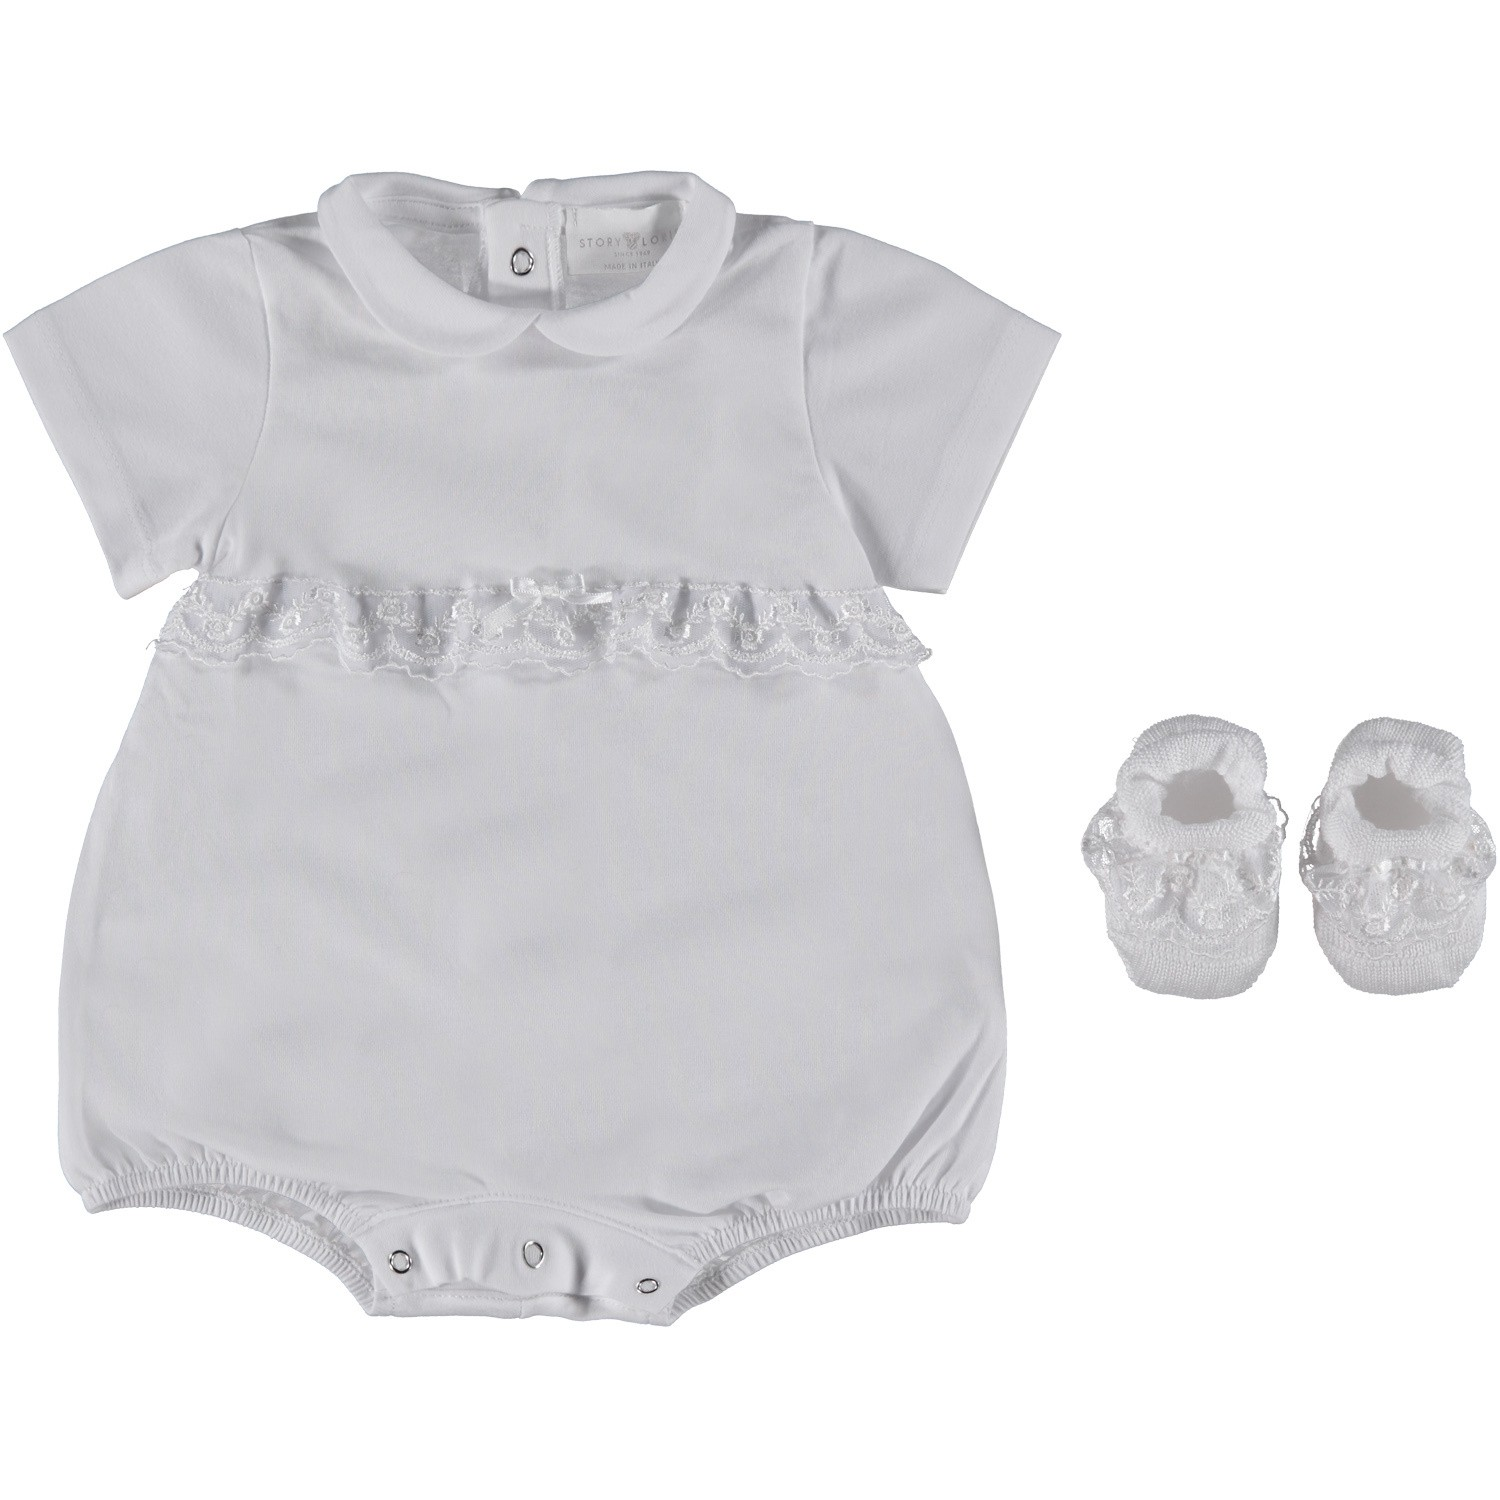 Picture of Story Loris 21959 baby set white